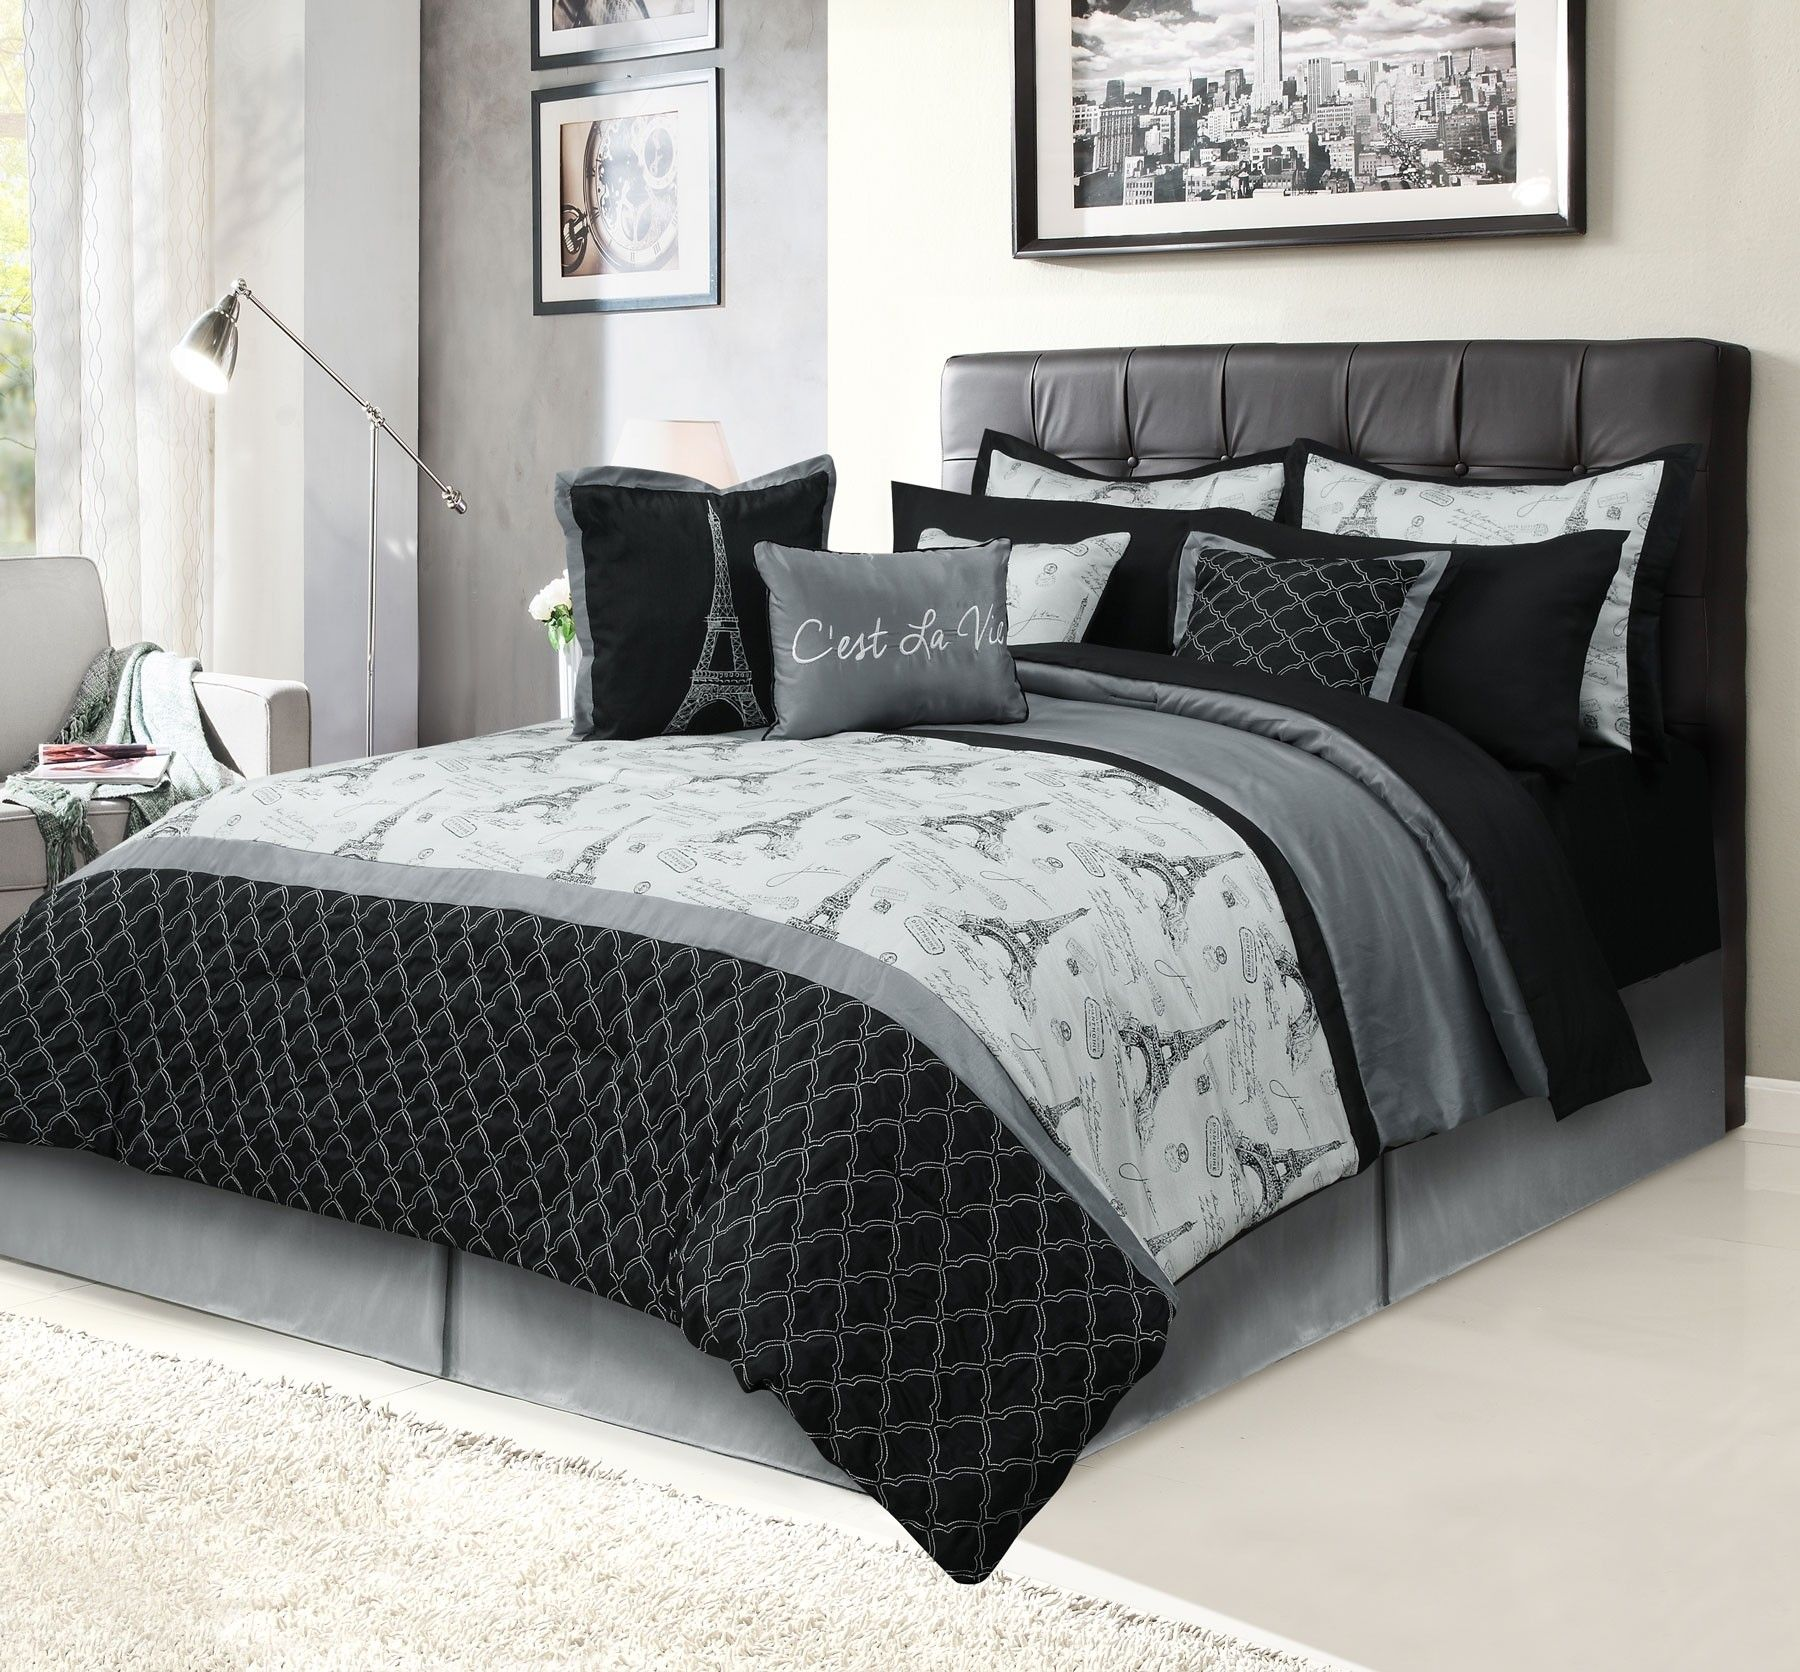 Beatrice C Est La Vie Paris Bedding Queen 12 Piece Bedding Bed In A Bag Set Black And Gray Paris Bedding Bed Linens Luxury Comforter Sets